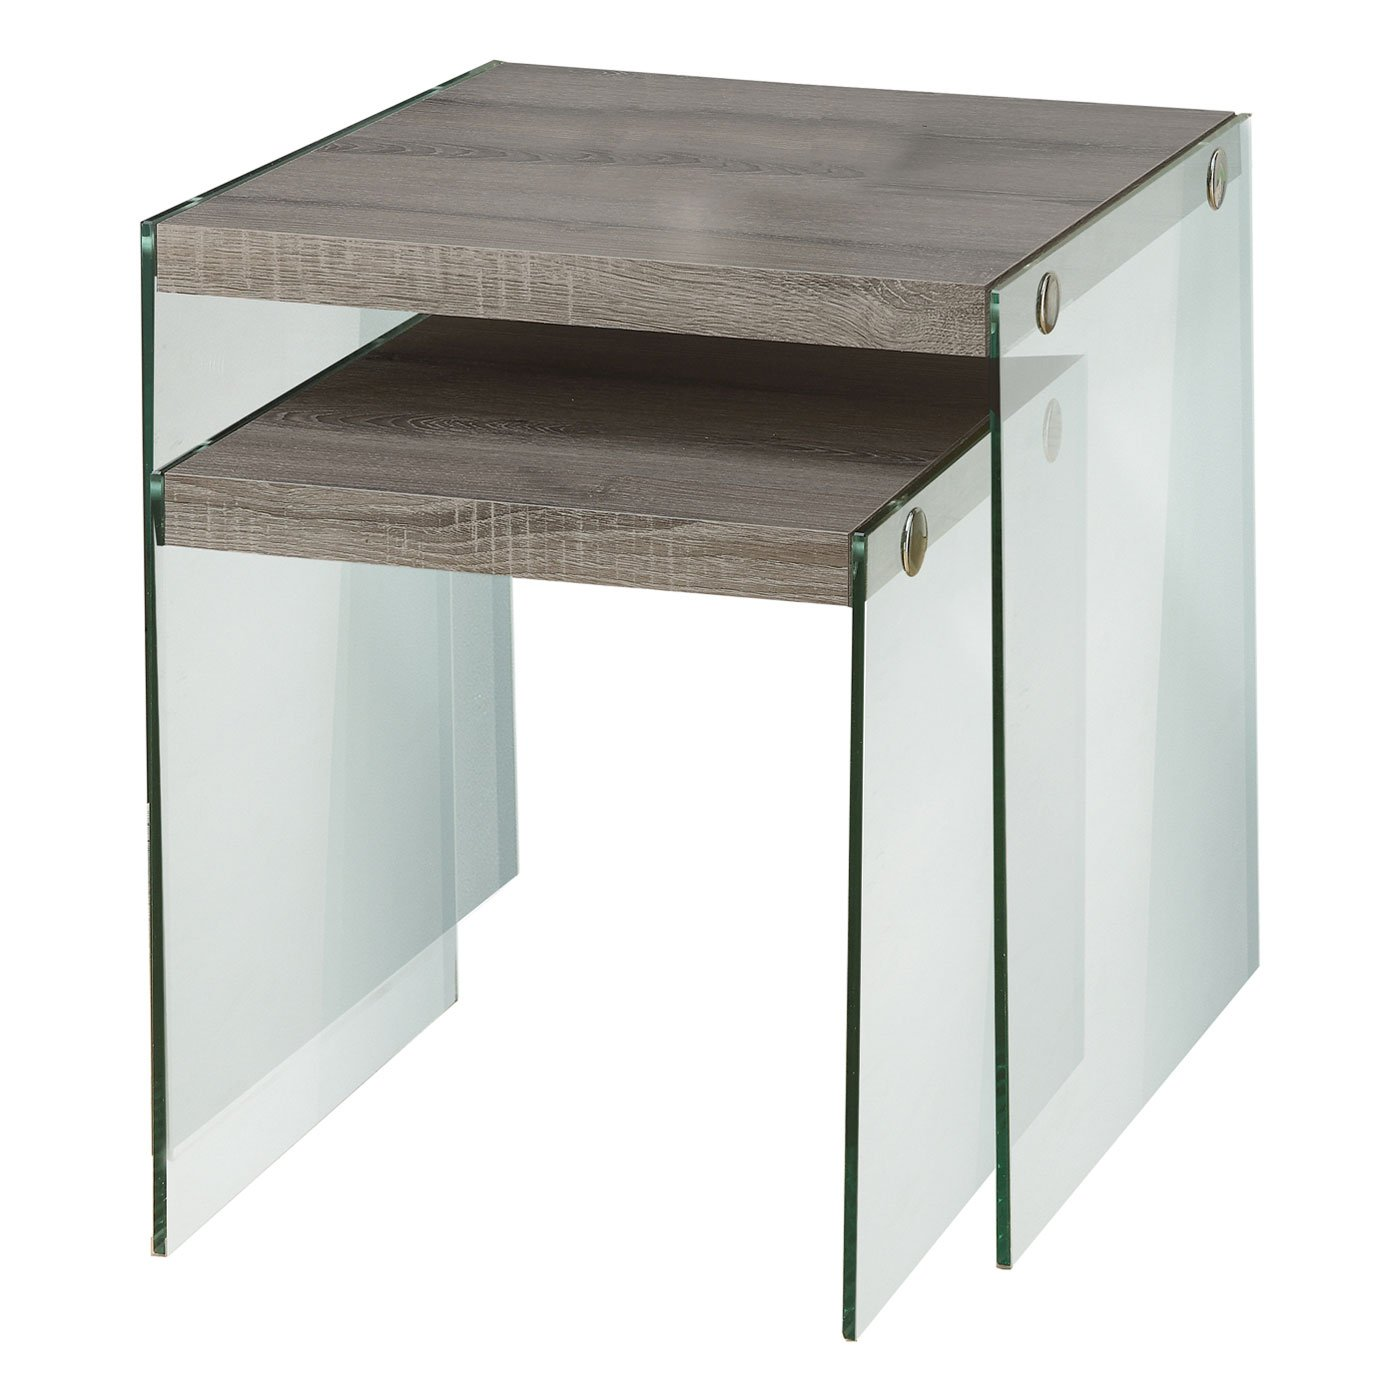 Monarch Specialties I 3053,Nesting Table, Tempered Glass, Dark Taupe by Monarch Specialties (Image #1)